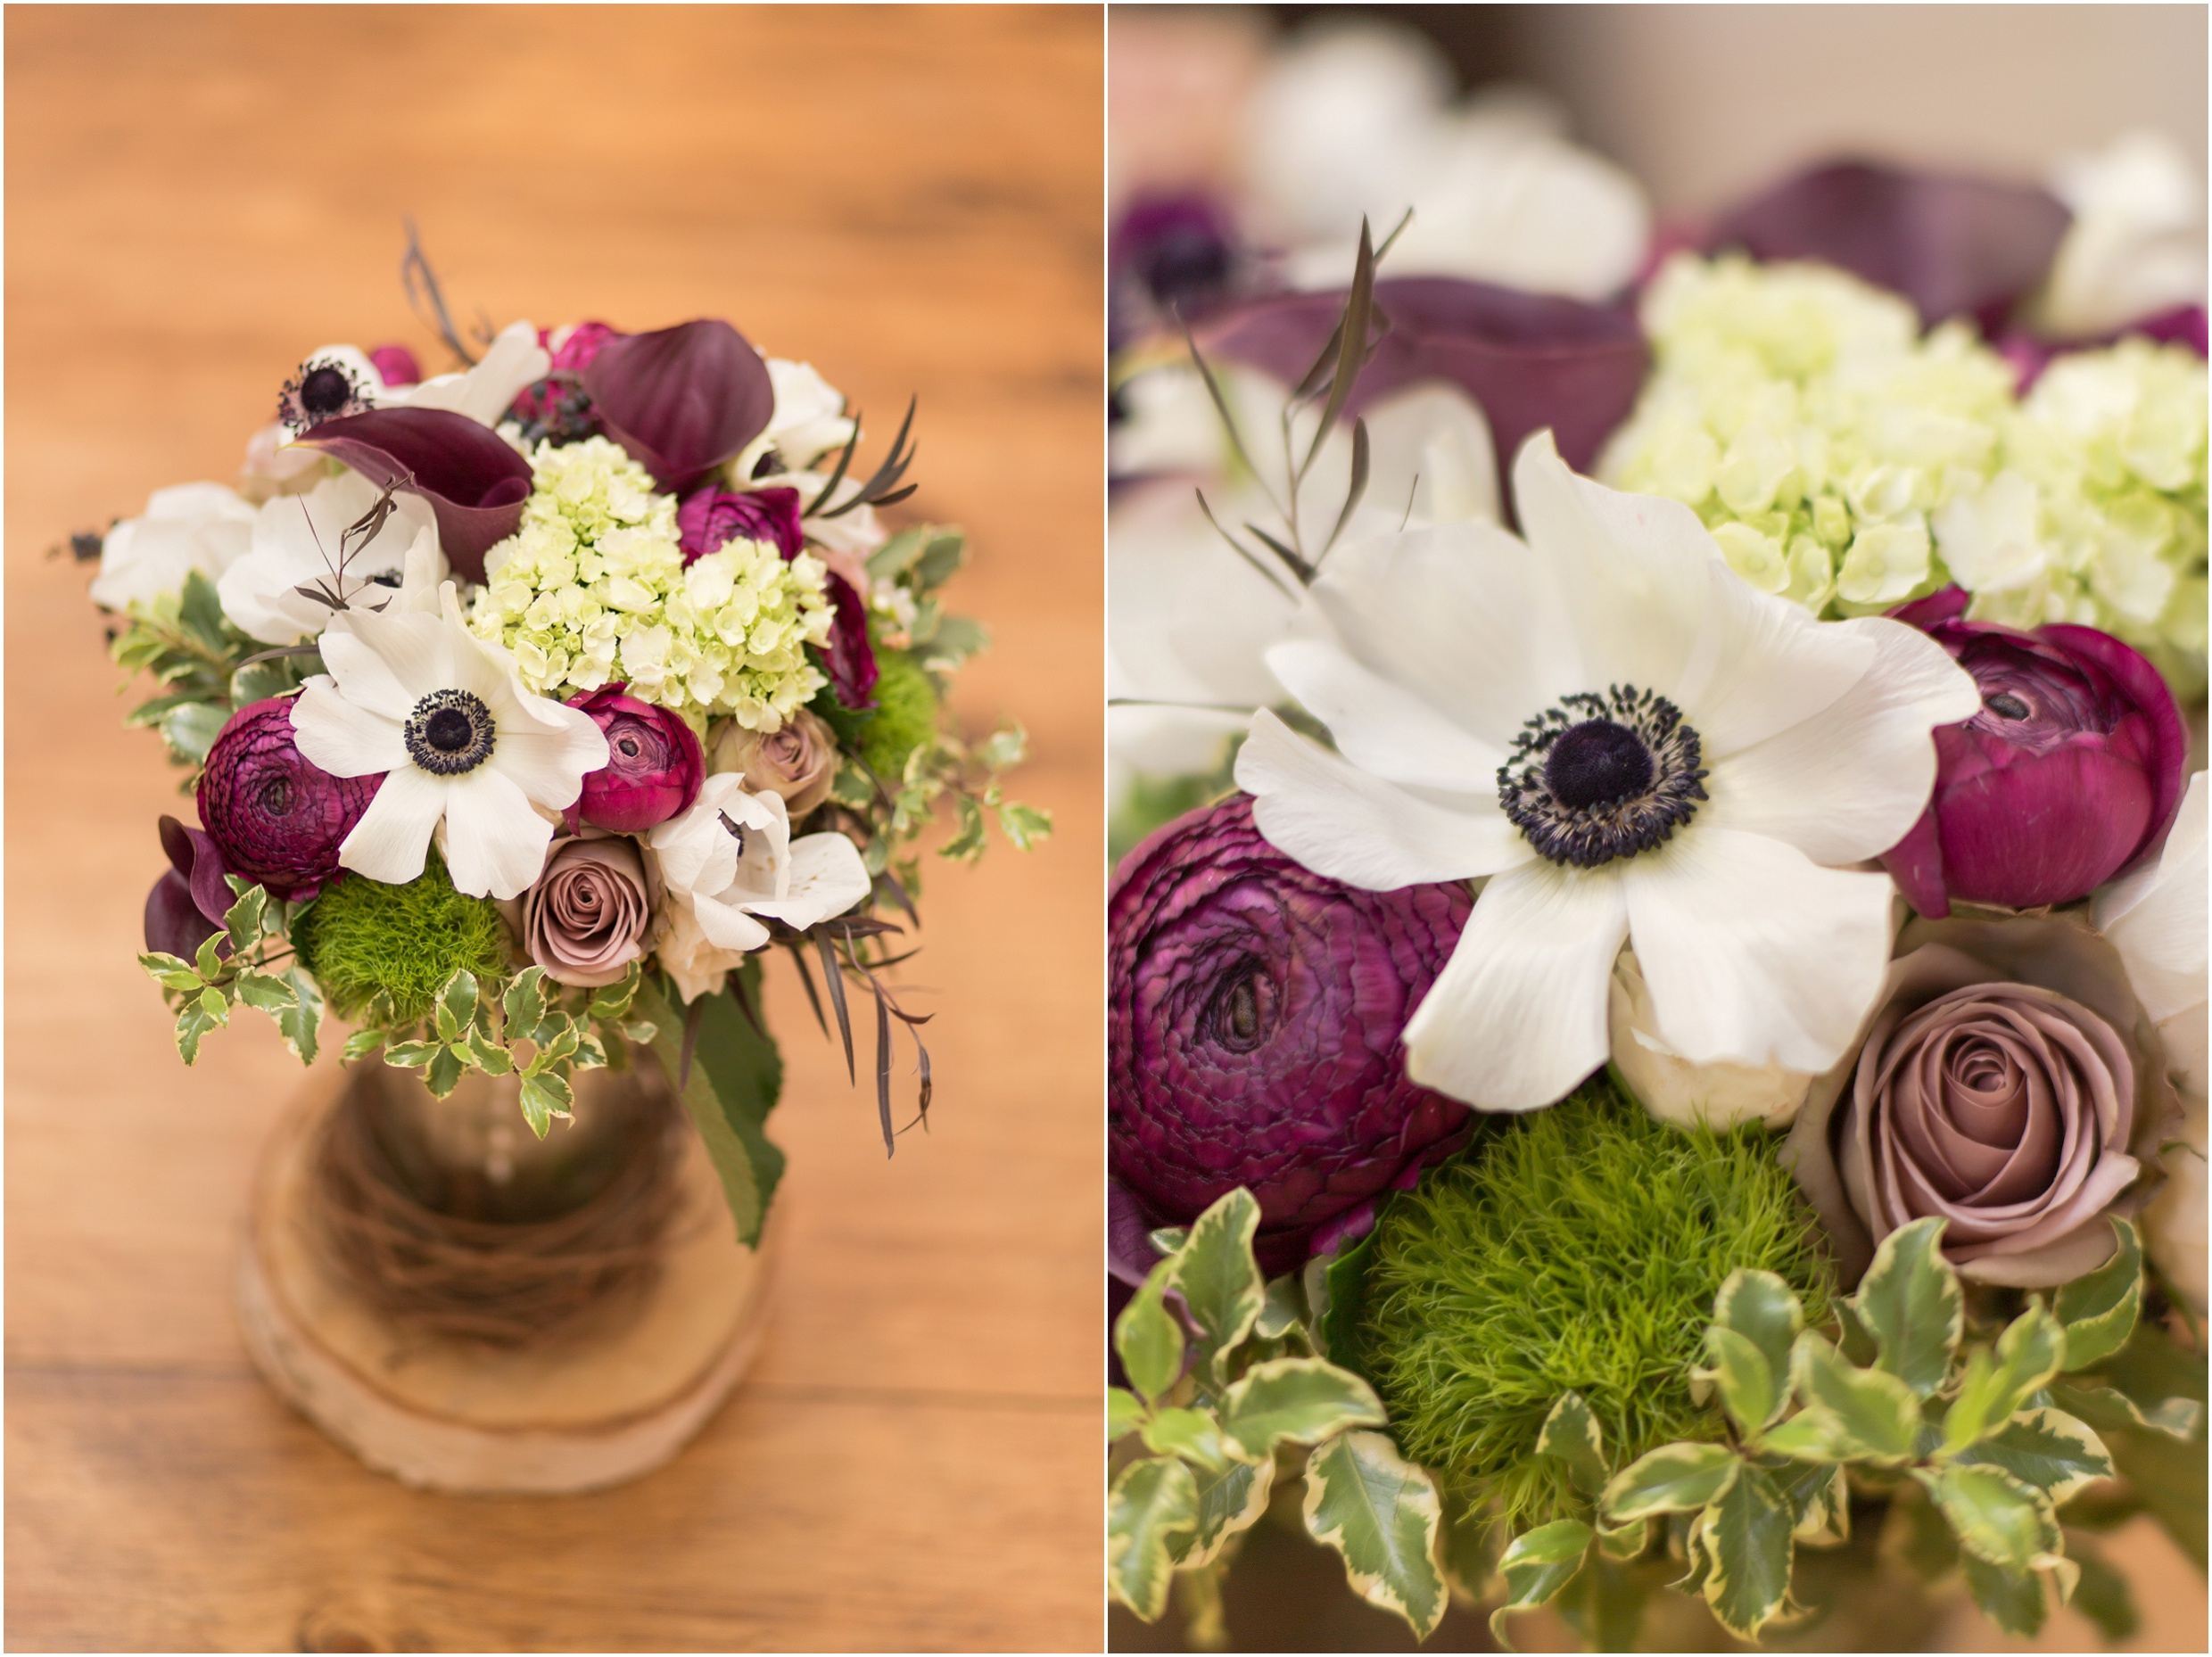 New Hampshire Wedding Photographer | Flag Hill Winery Wedding Bouquet Poppies and Ronoculous | Flag Hill winery